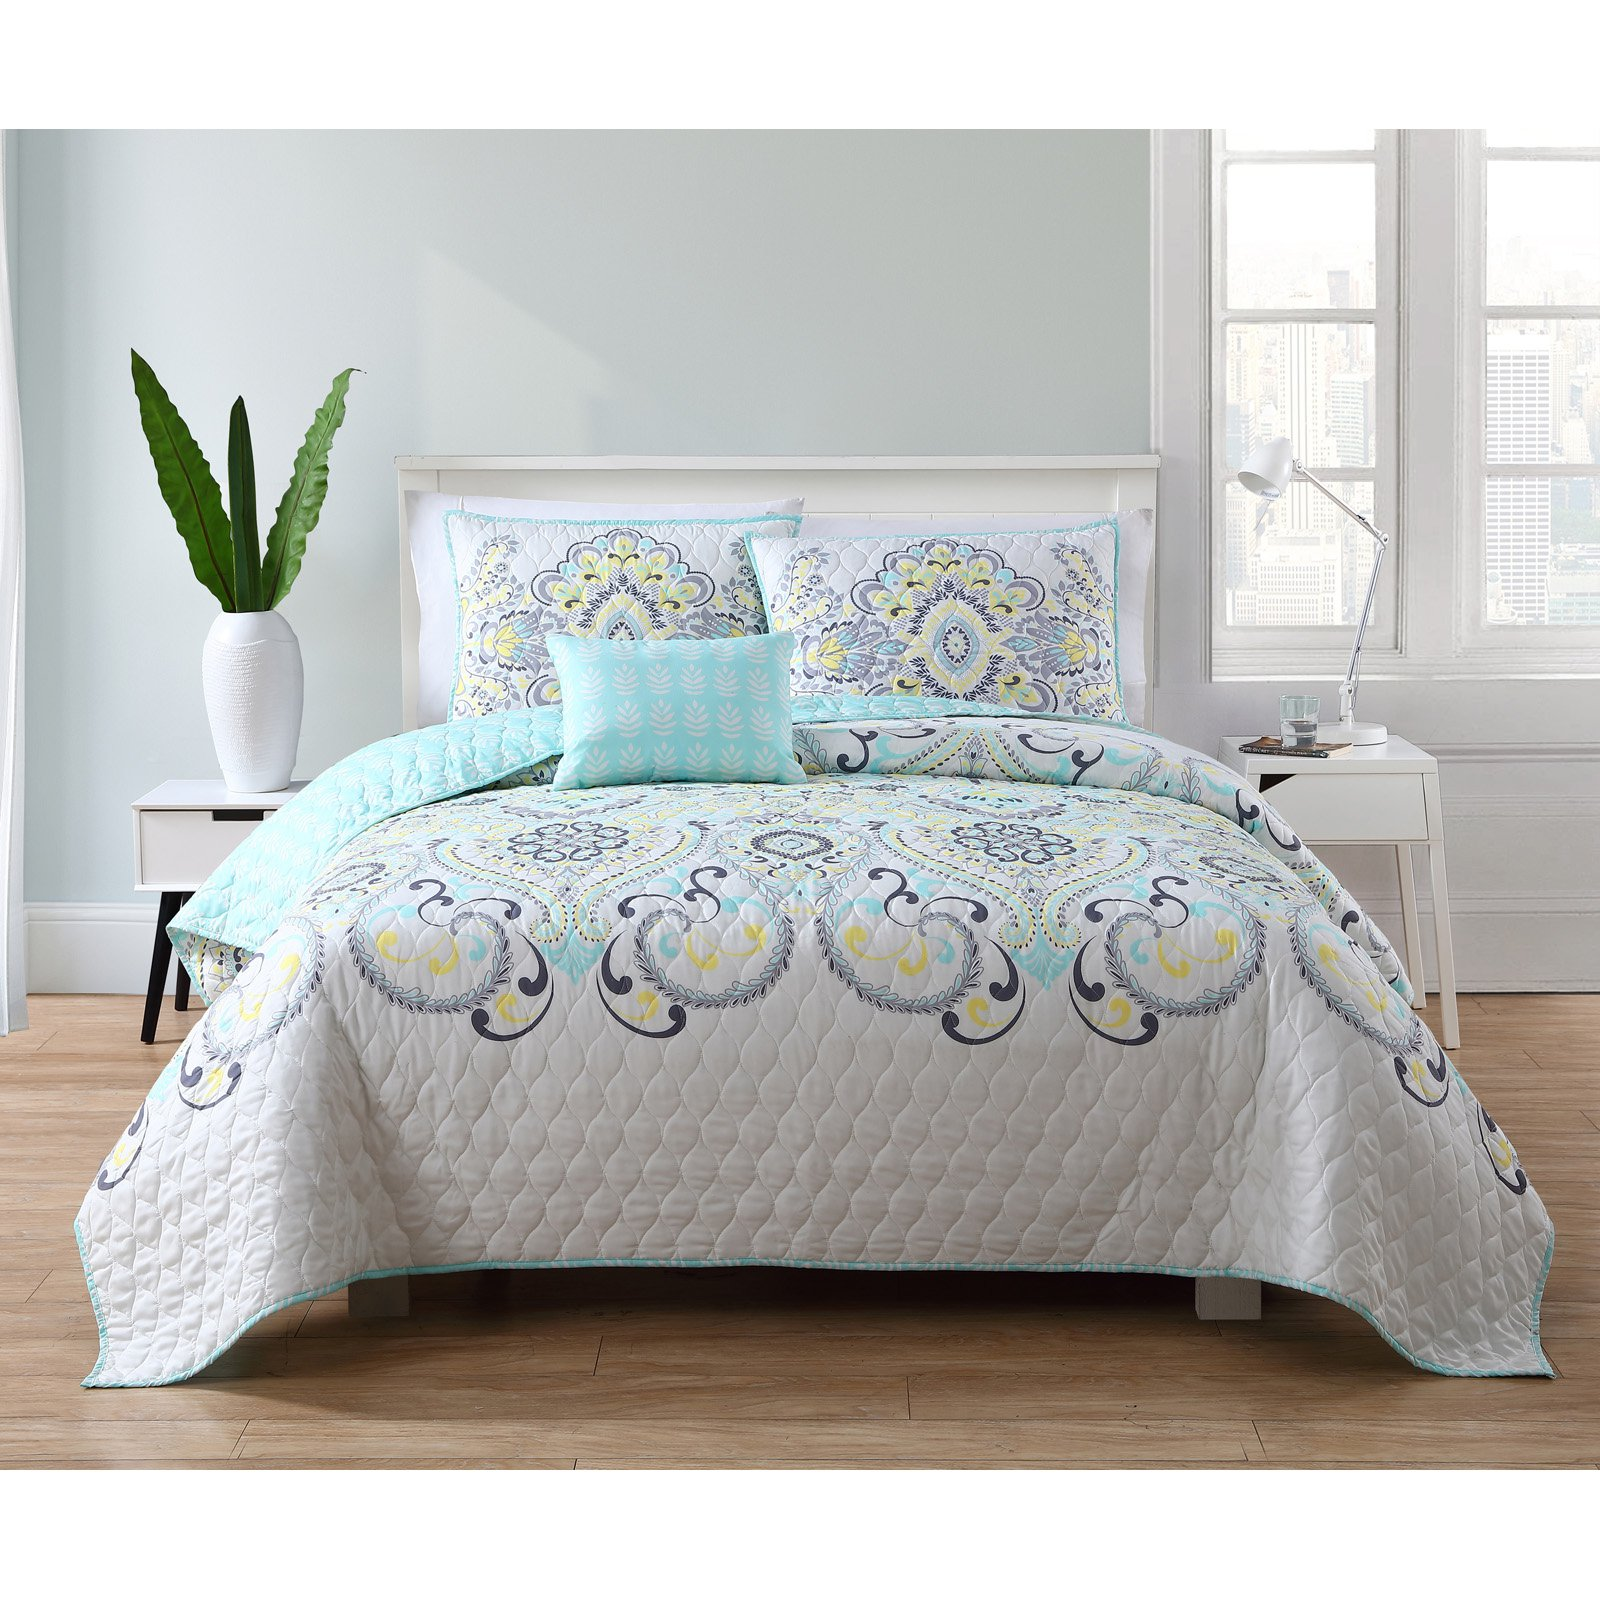 VCNY Home Yellow/Blue Amherst Printed 3/4 Piece Quilt Bedding Set, Shams and Decorative Pillow Included